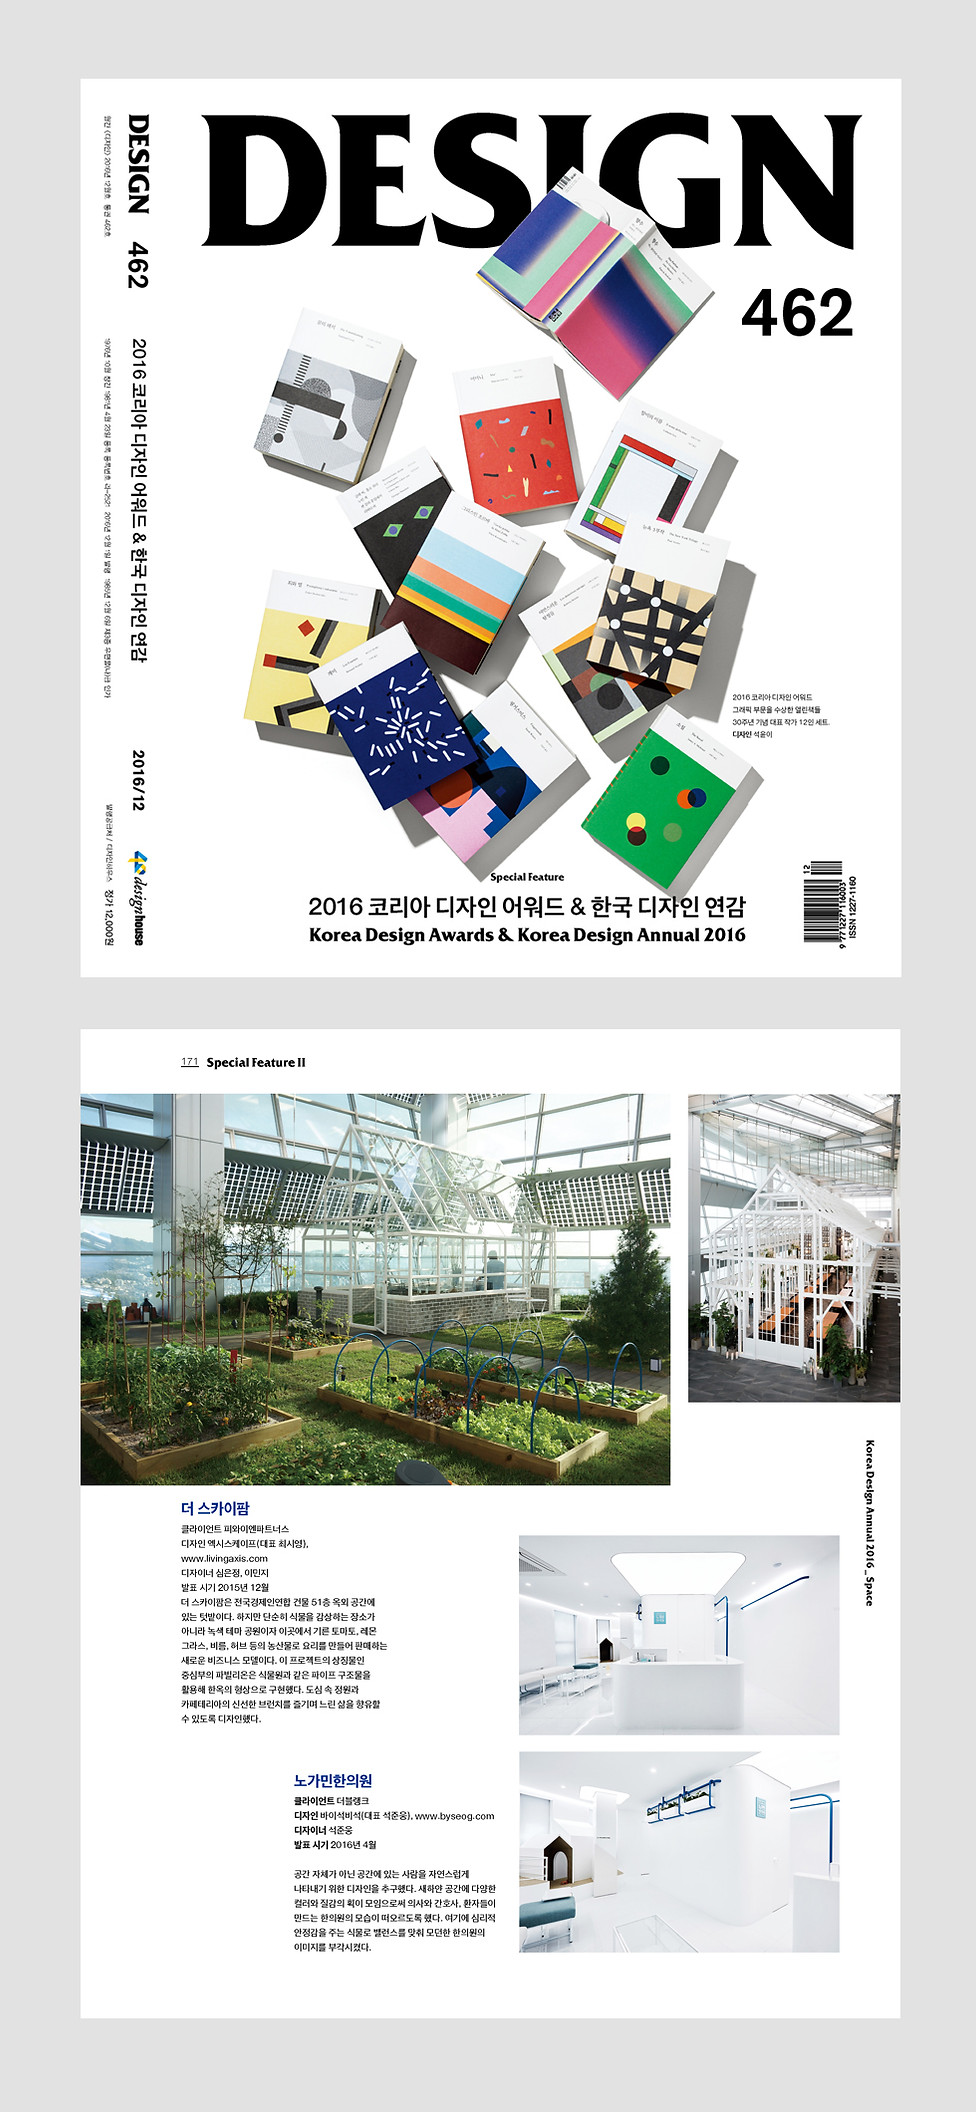 2016 korea design awards.jpg